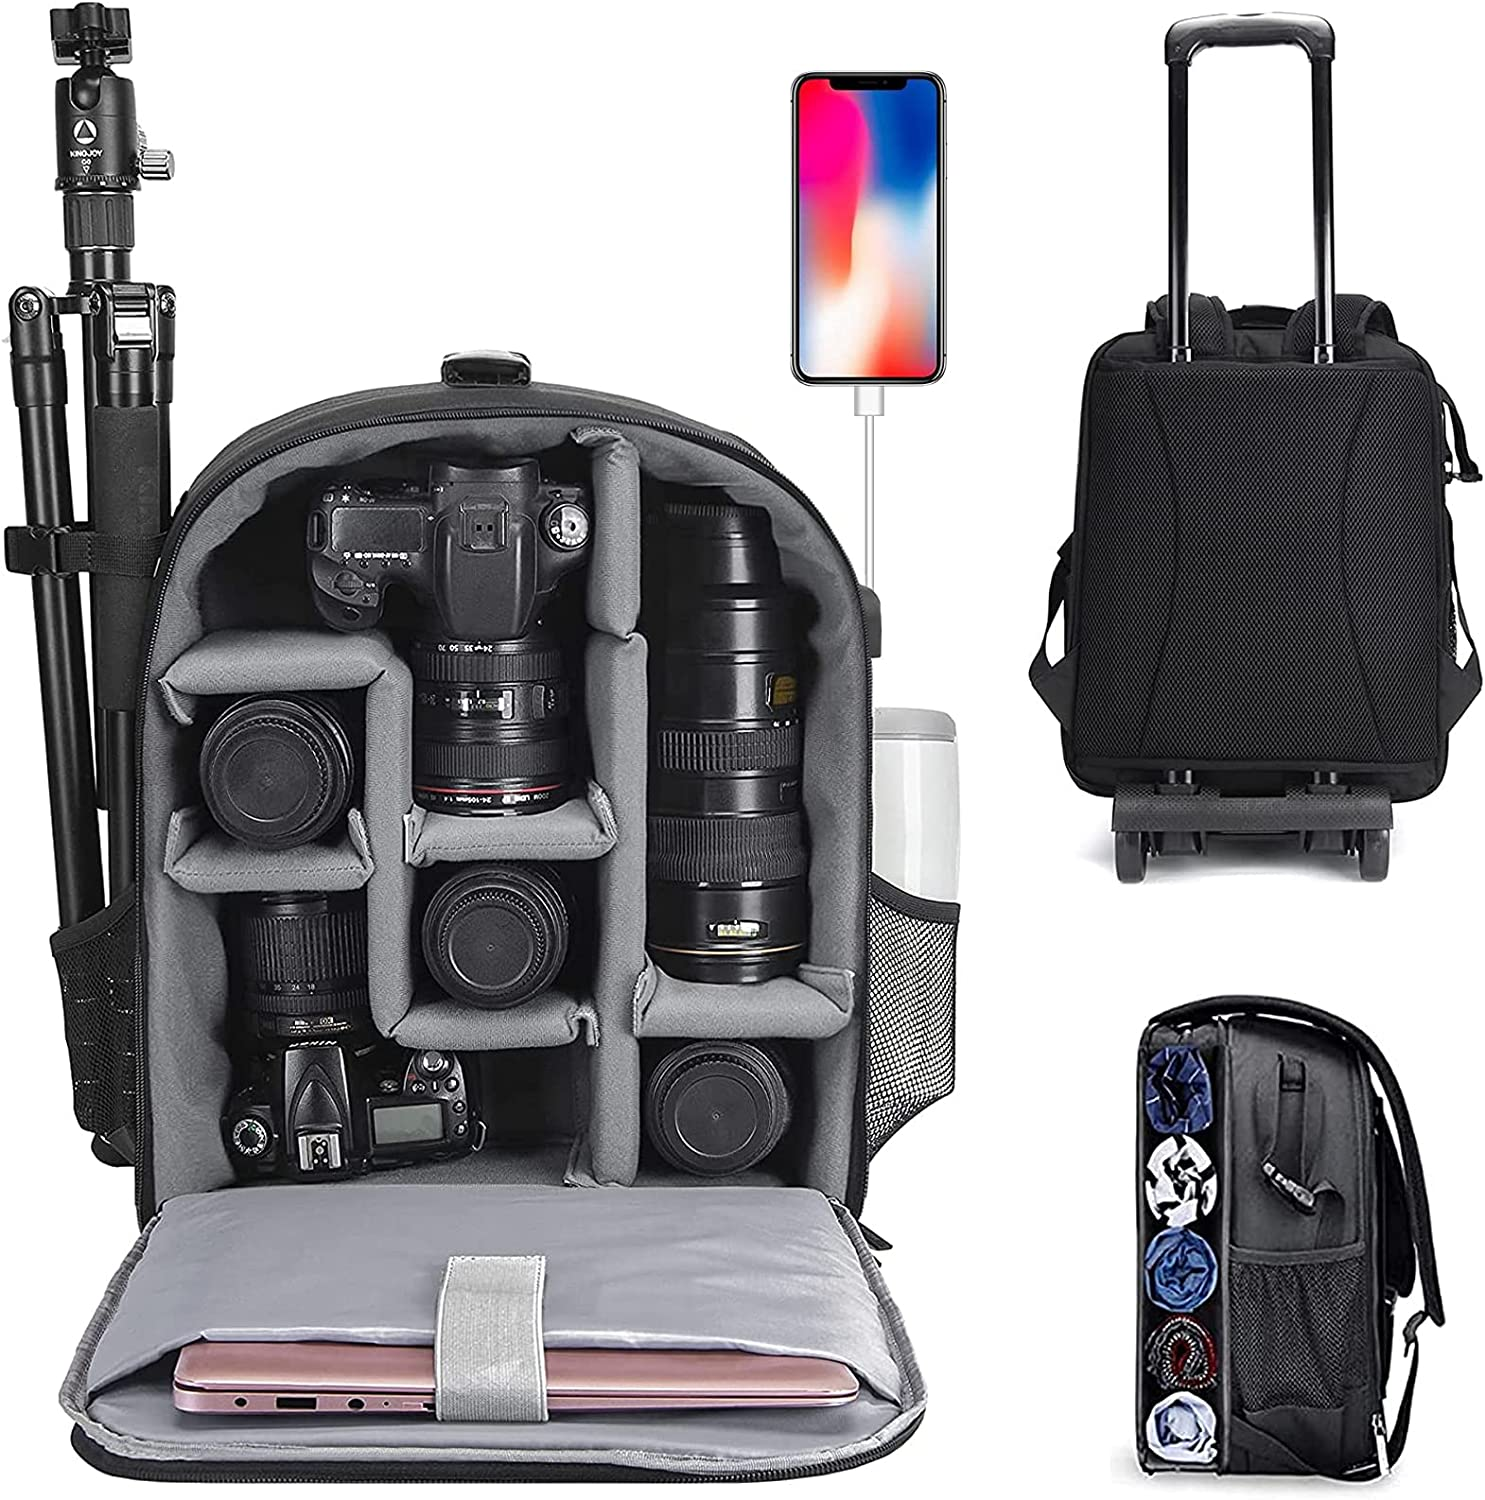 CADeN Camera Backpack Trolley Case with 15.6 inch Laptop Compartment Waterproof Large, Rolling Camera Bag Compatible for Sony Canon Nikon DSLR/SLR Mirrorless Cameras